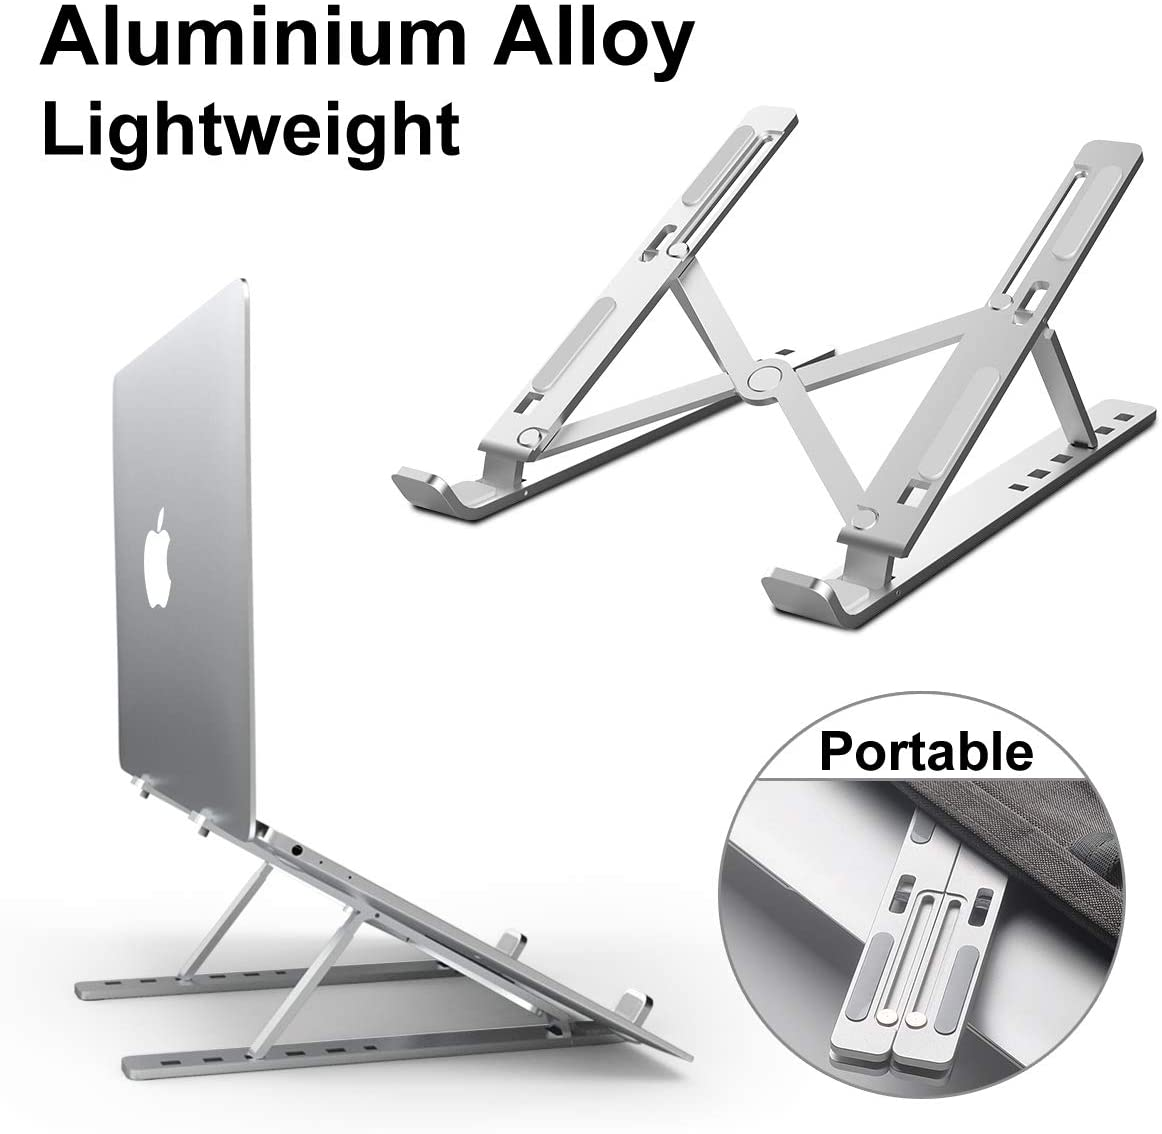 """Adjustable Portable Laptop Holder for Desk, Aluminum Foldable Laptop Riser with 6 Levels of Height Adjustment, Compatible with MacBook Air Pro, Dell, HP, Lenovo,10-15.6"""" Laptops"""